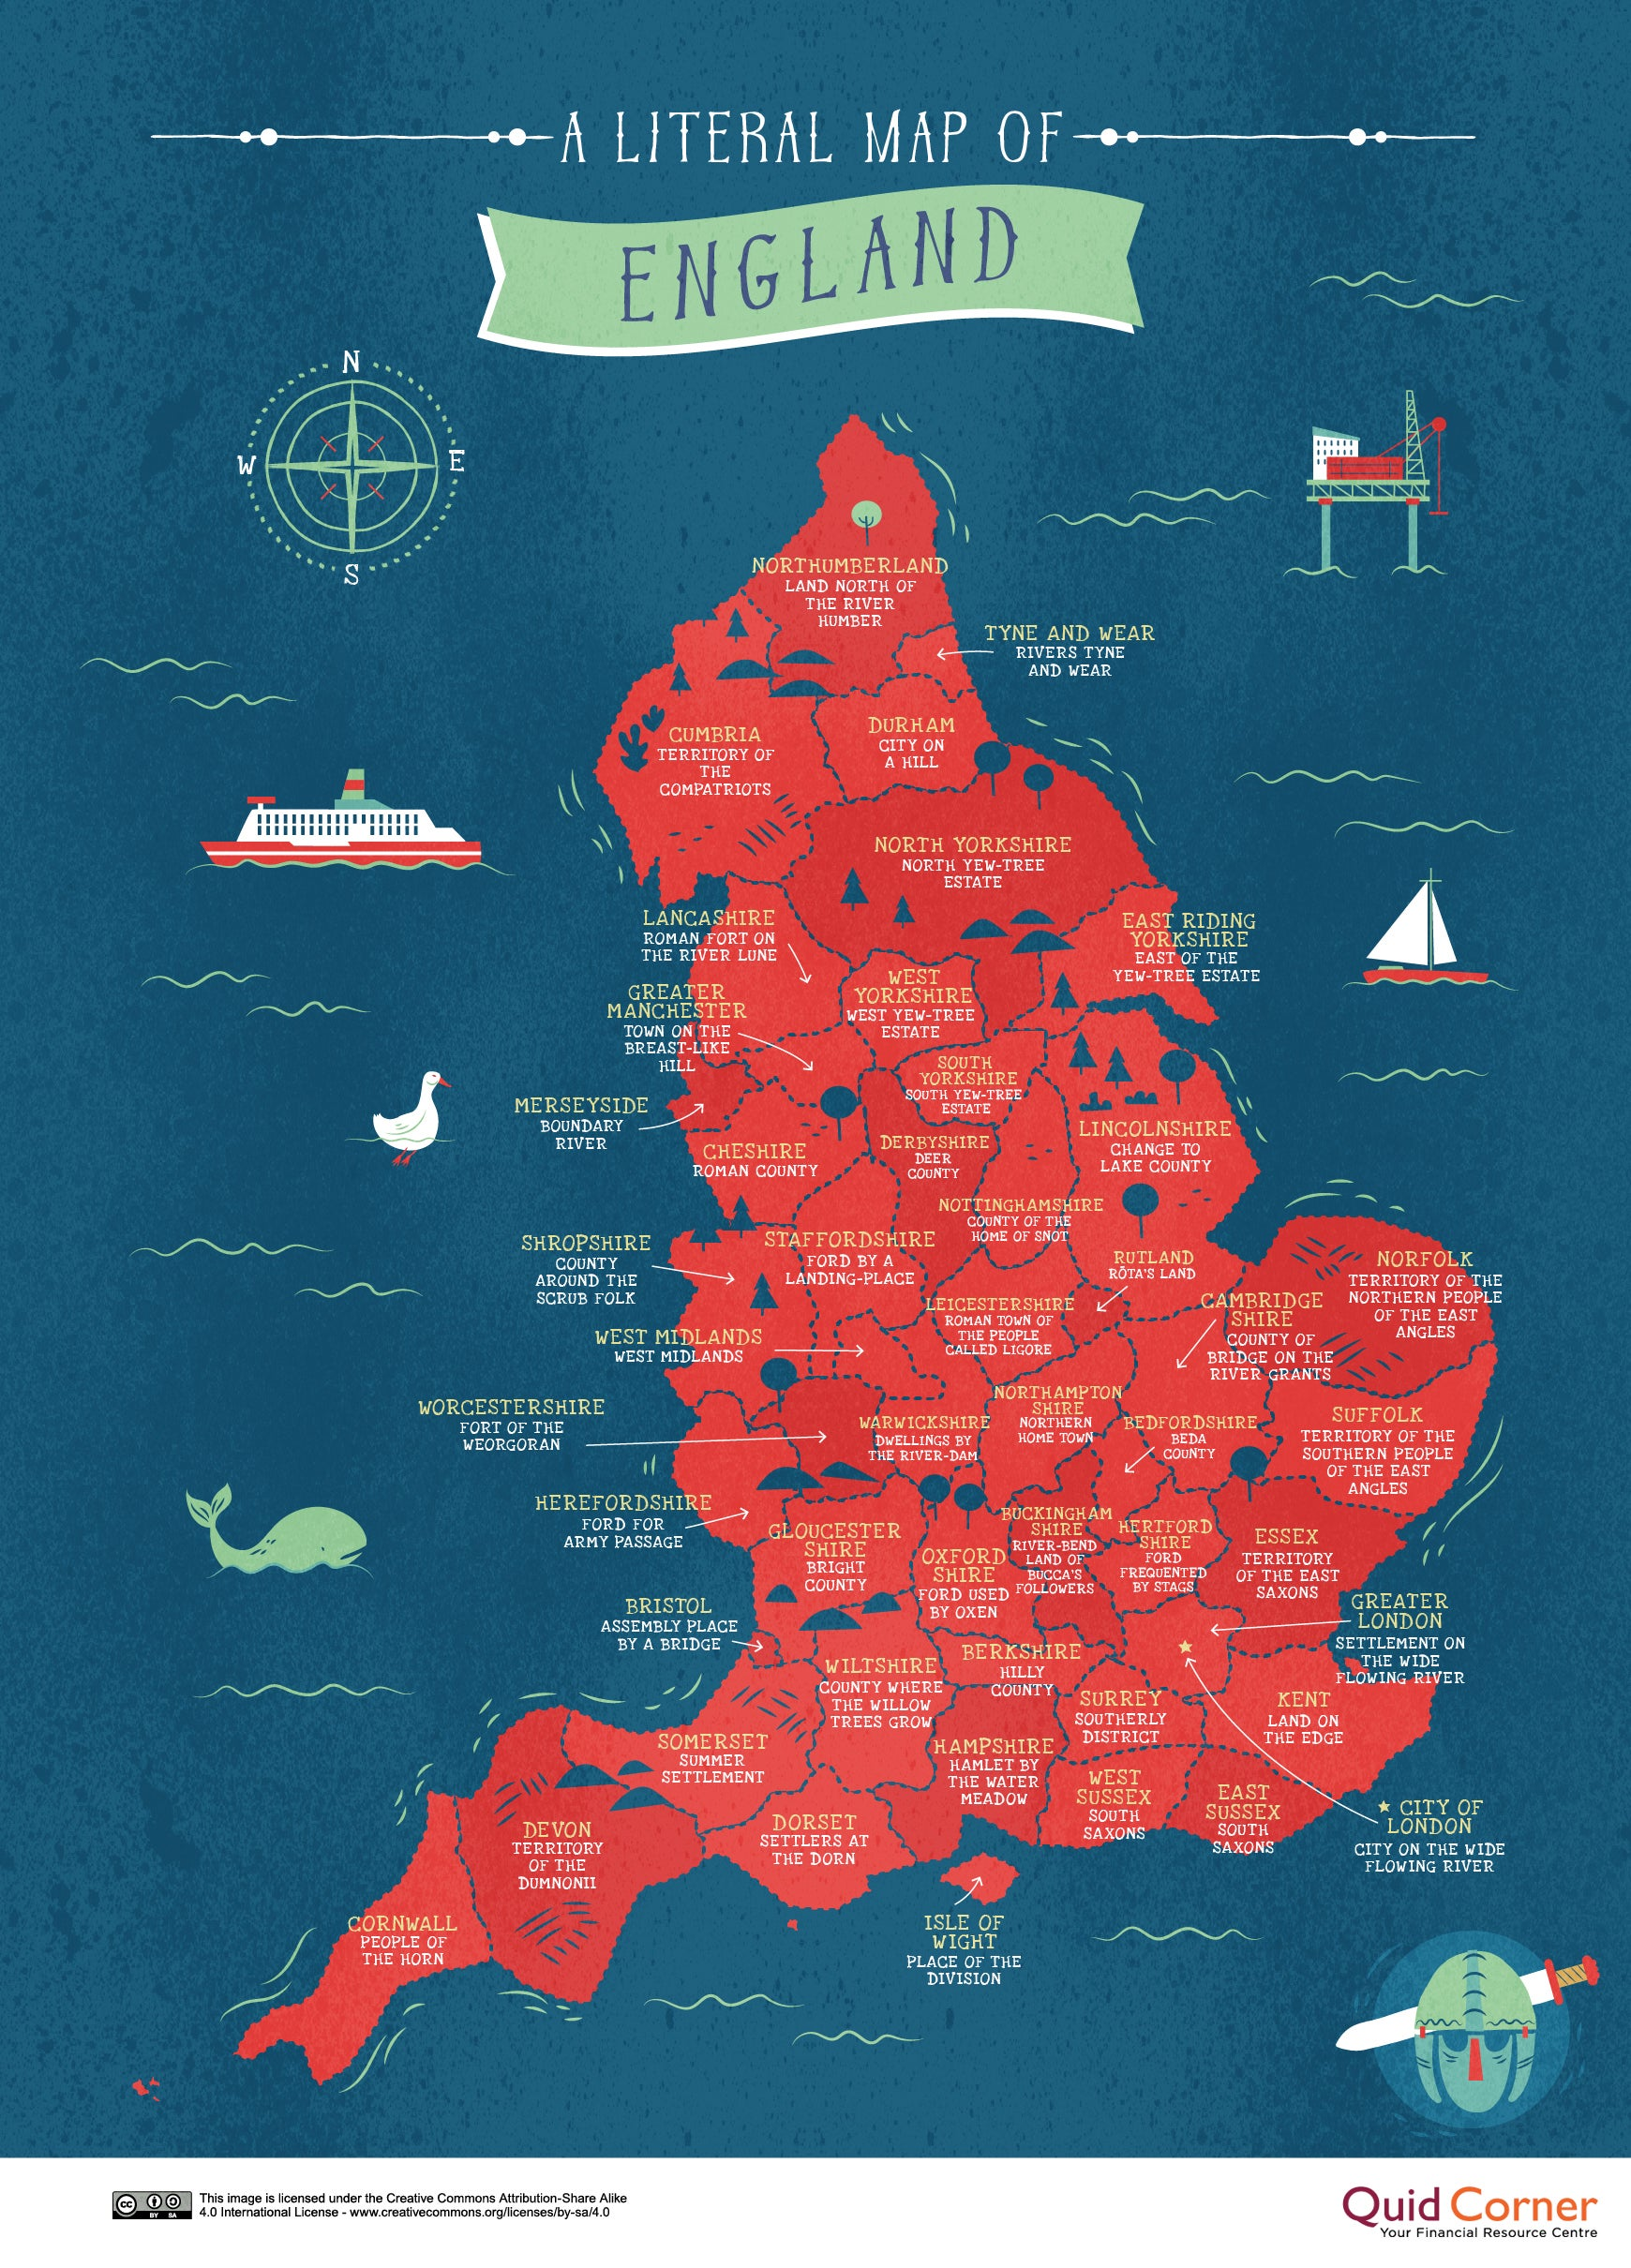 Map Of England Showing Cities And Towns.The Literal Meanings Behind Britain S Place Names Mapped Indy100